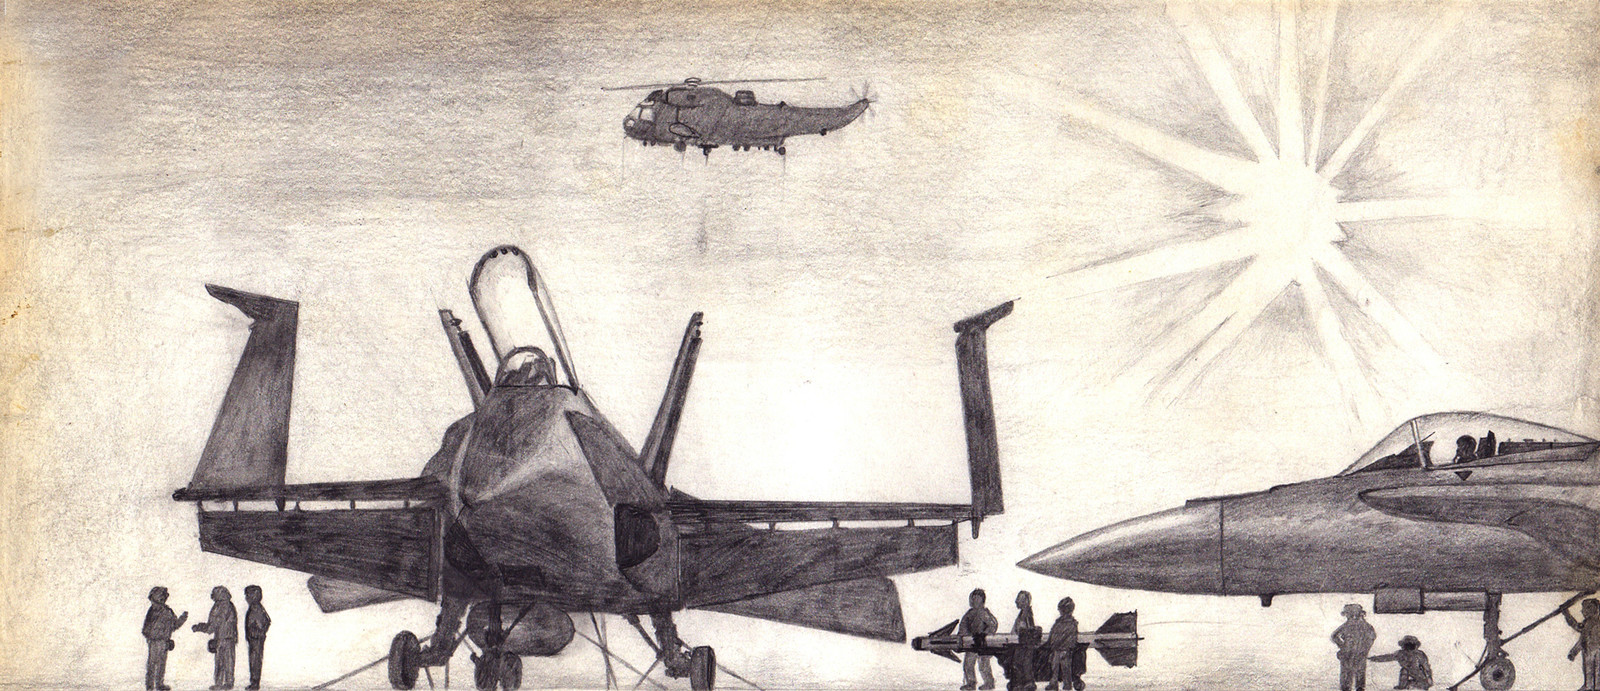 Riding on the Top Gun wave, I also did an illustration of Hornets on the top of a carrier deck. I also did NOT have a girlfriend back then.